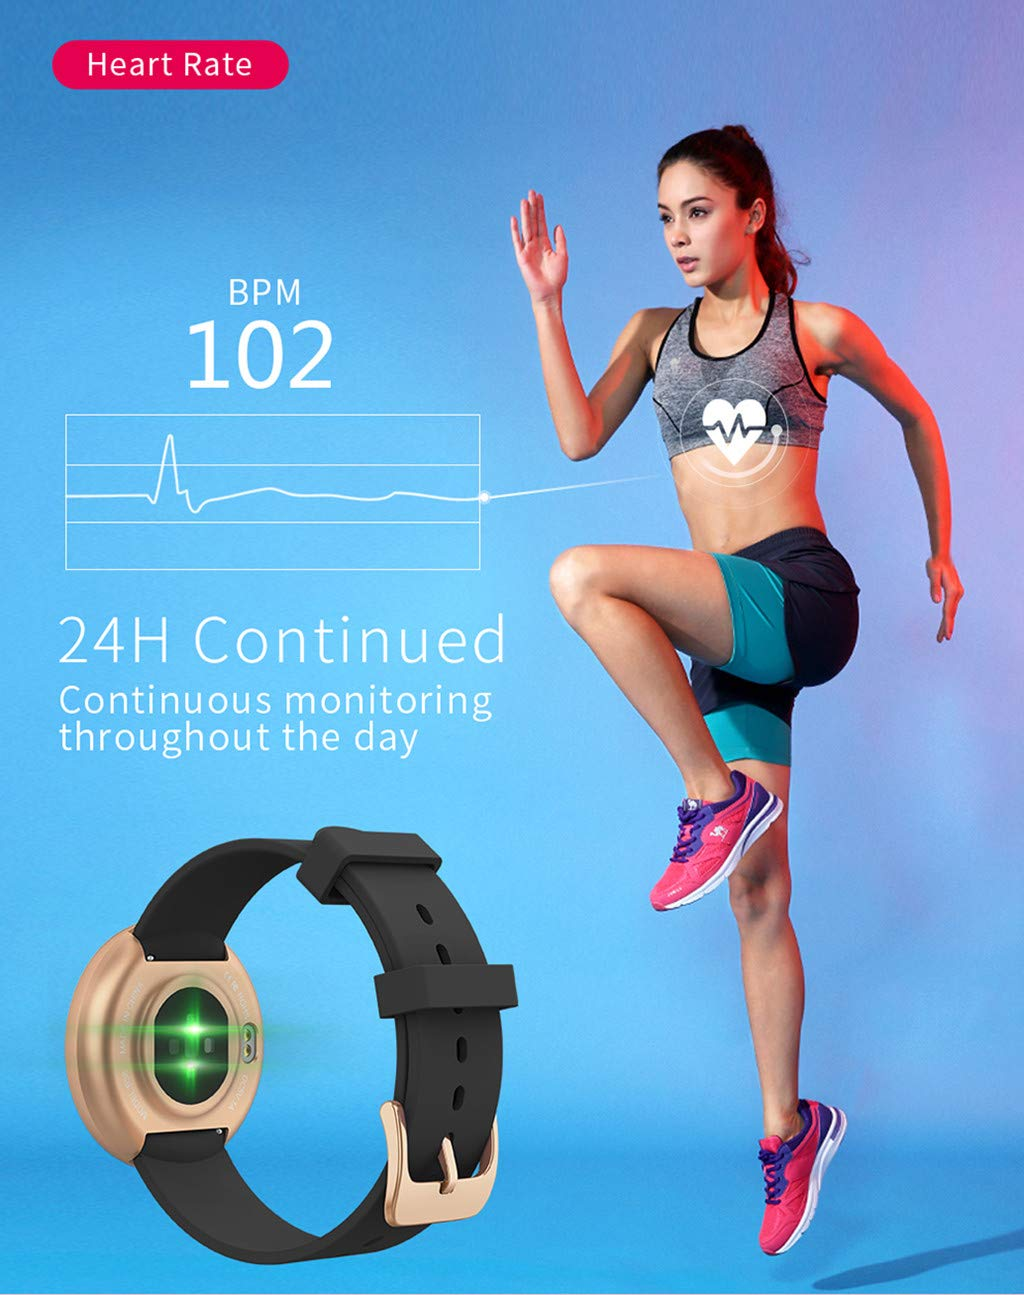 TADAMI Female Heart Rate Color Screen Physiological Period Reminds Fashion Smart Bracel (Black) by TADAMI Blouse (Image #8)